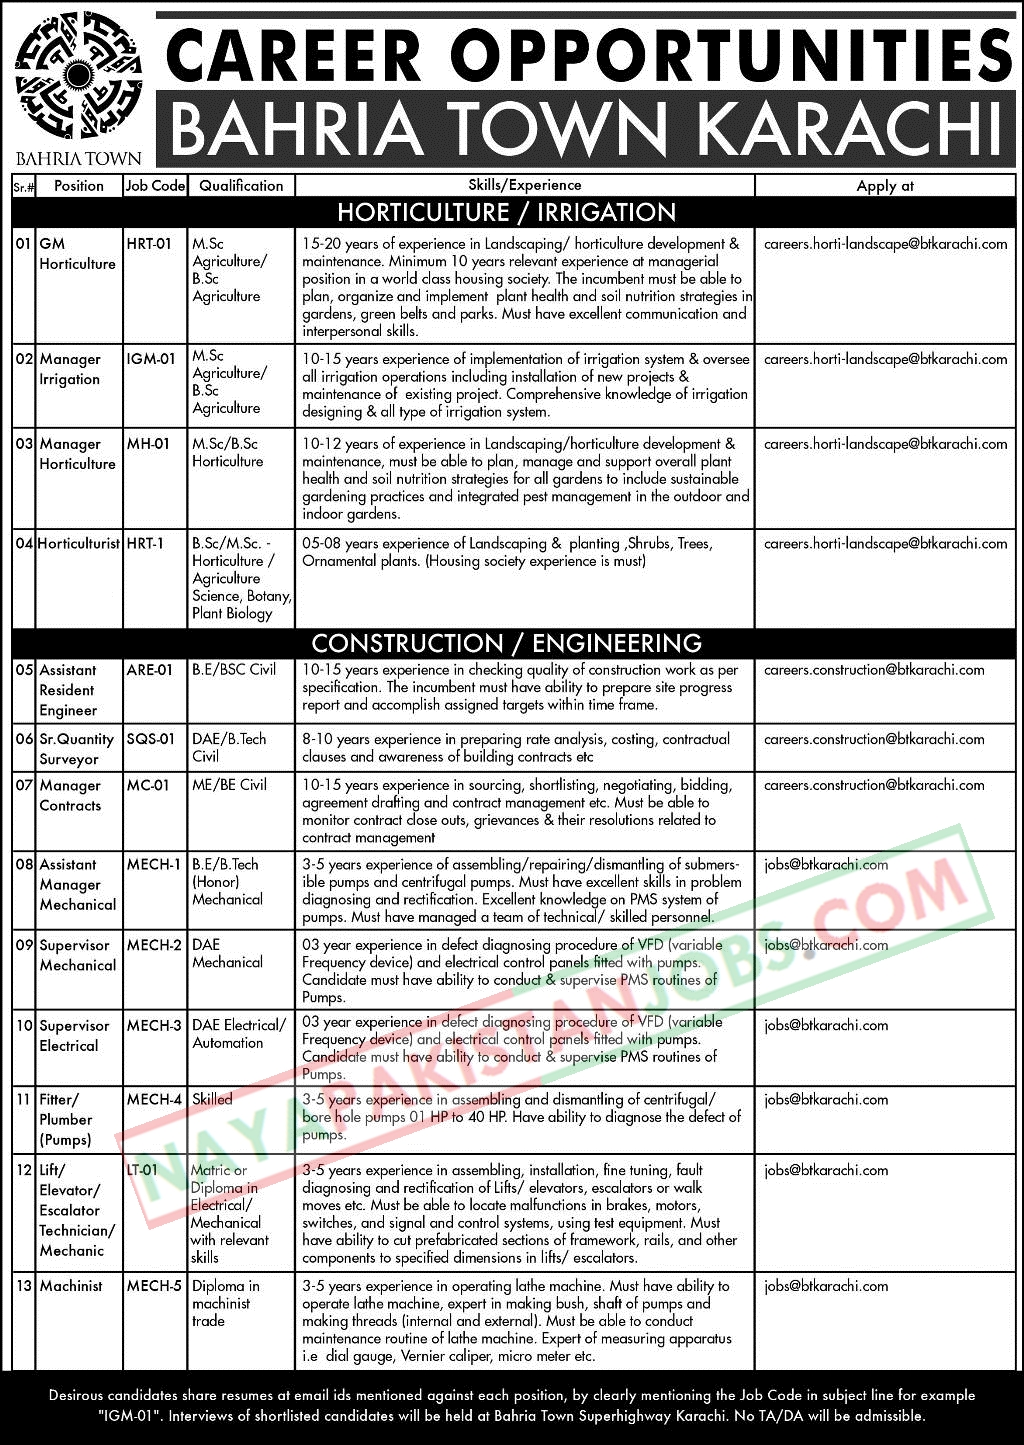 Latest Vacancies Announced in Bahria Town Pvt Limited Karachi 27 November 2018 - Naya Pakistan